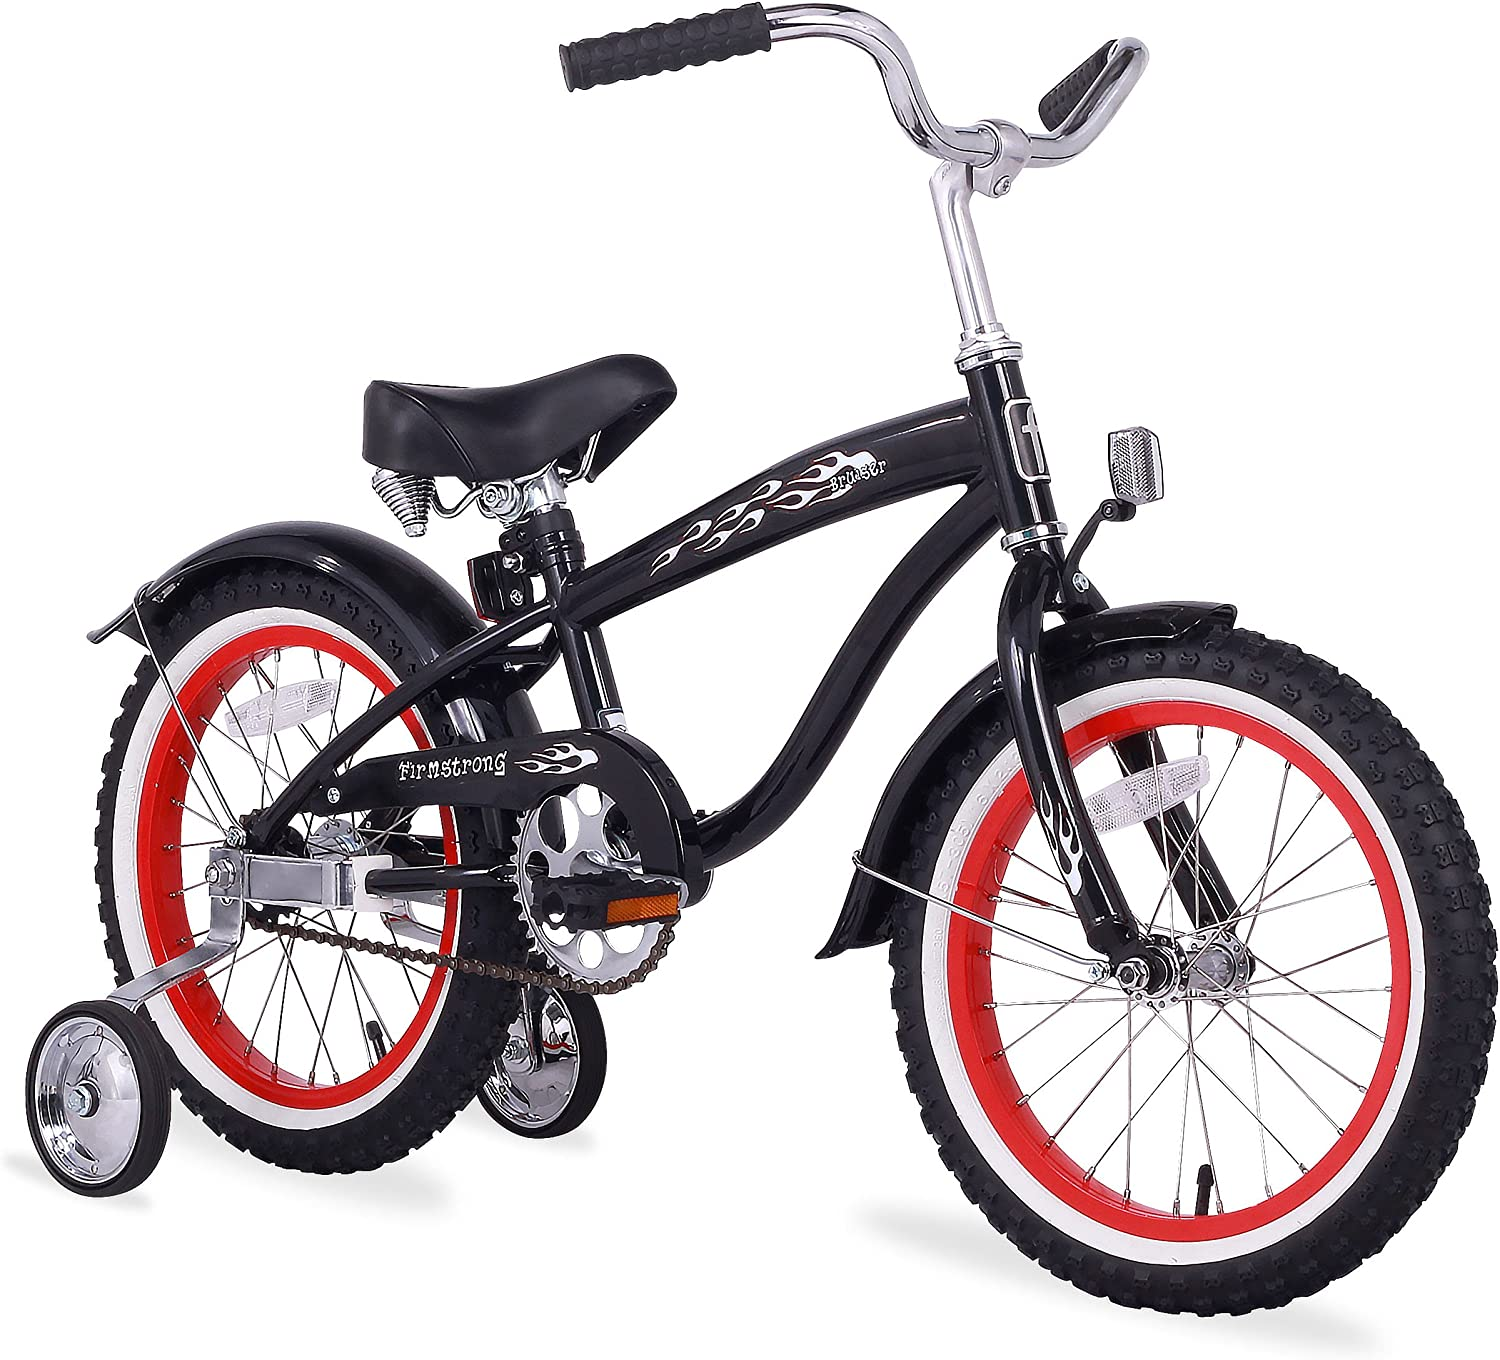 Firmstrong Bruiser Boy s Single Speed Bicycle w Training Wheels, 16-Inch, Black w Red Rims